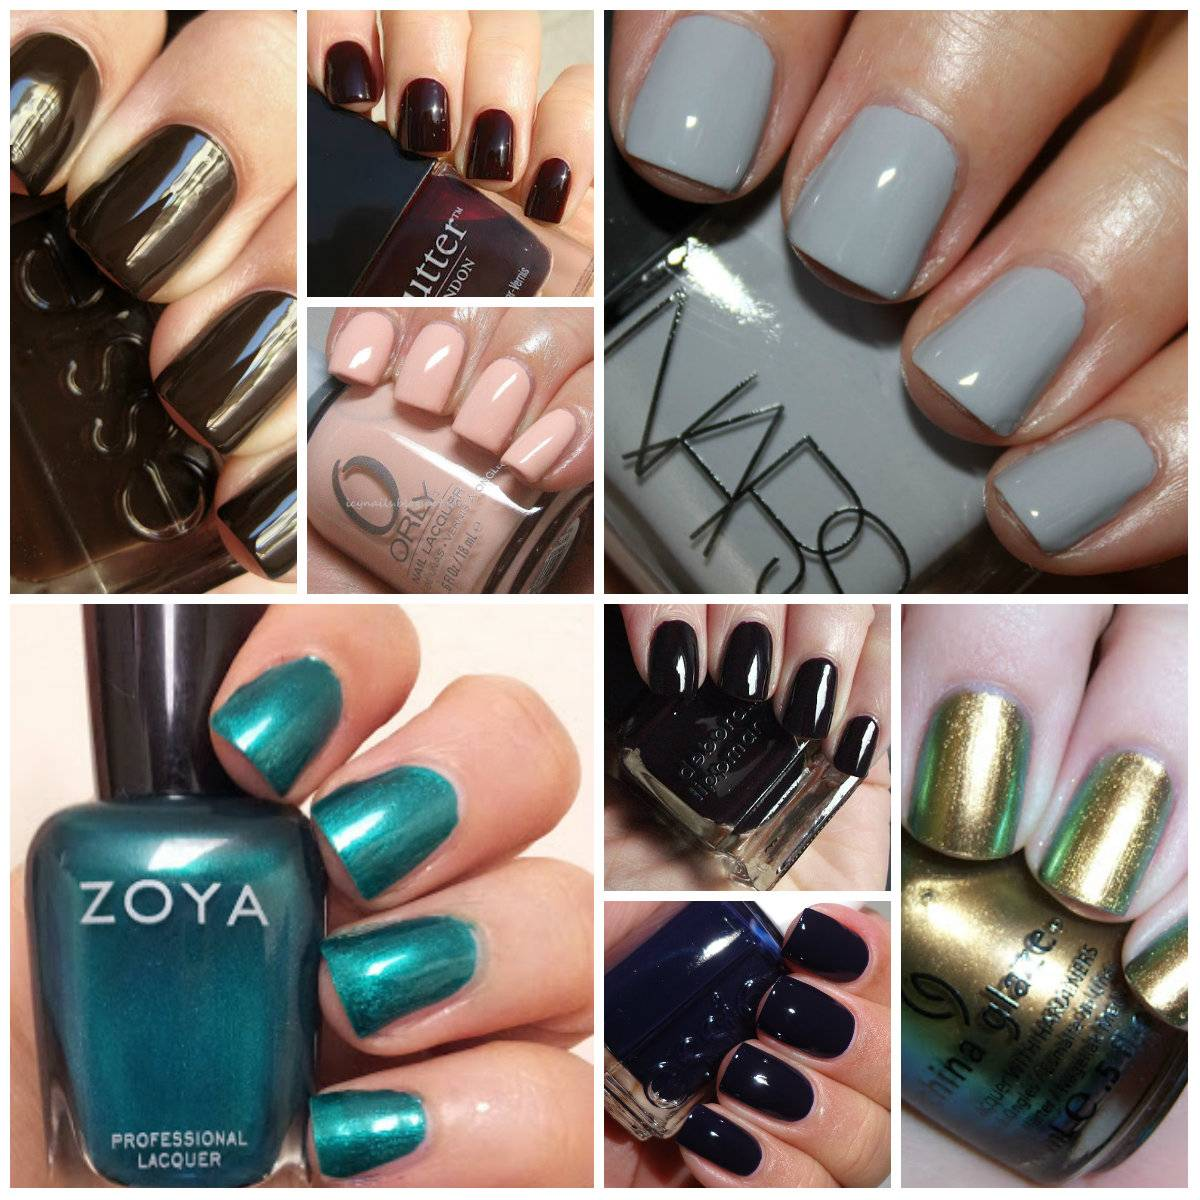 Winter Nail Polish Colors: 8 Must-Have Fall Nail Polish Colors!